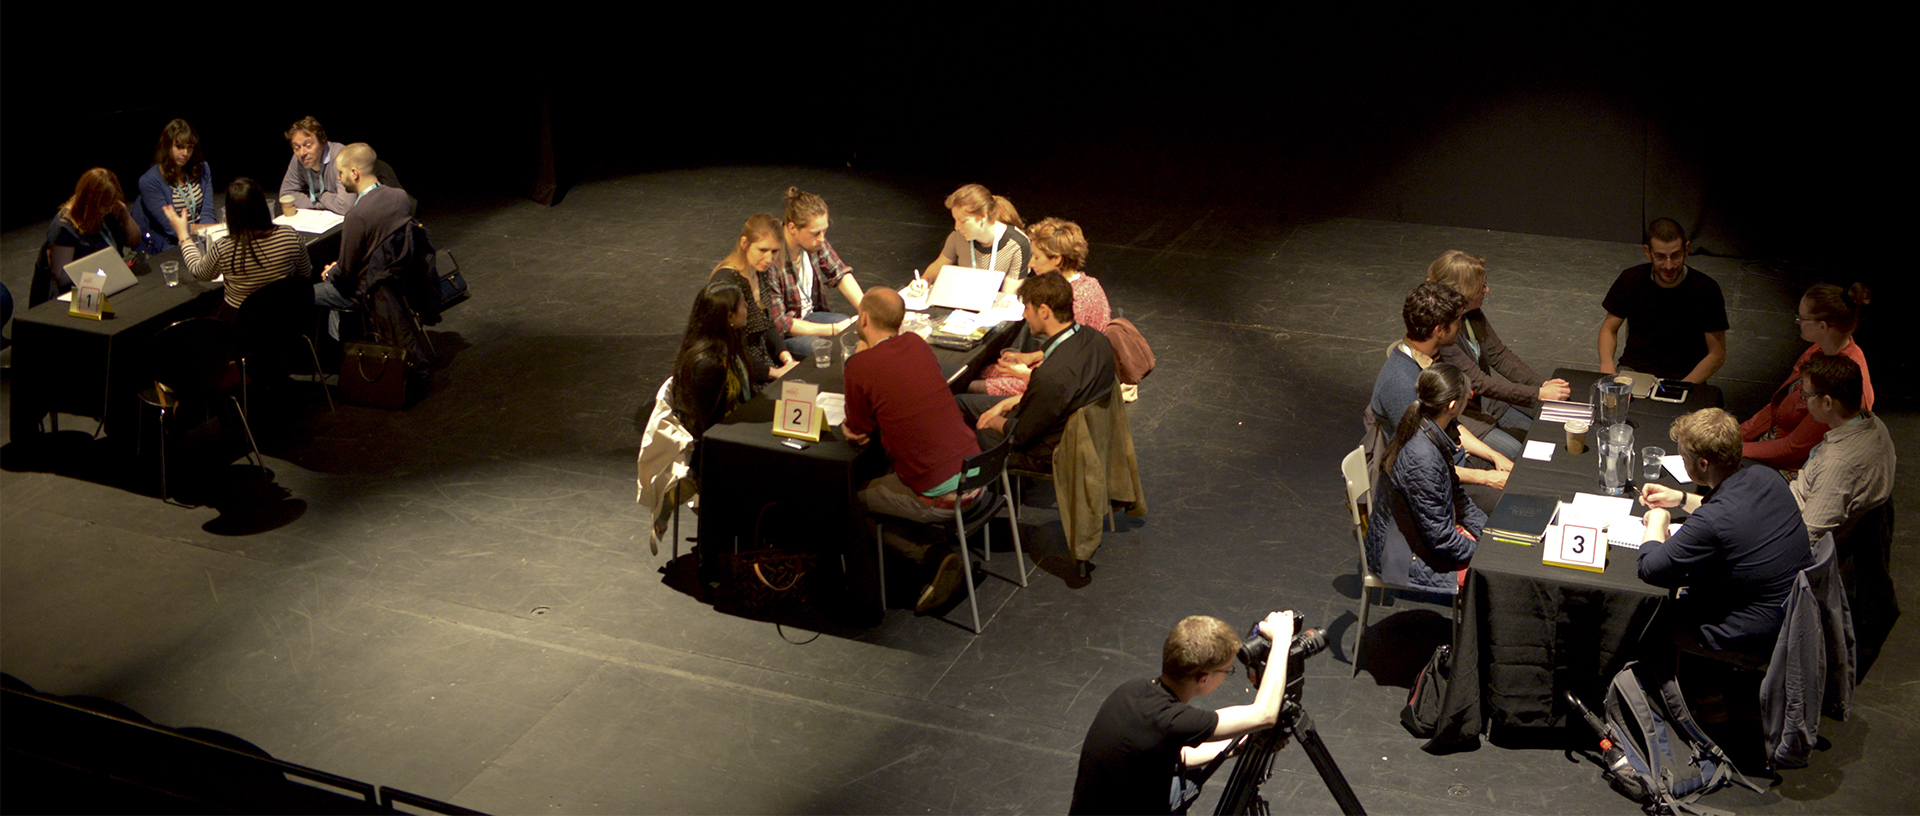 EIFF_Round_table_discussion